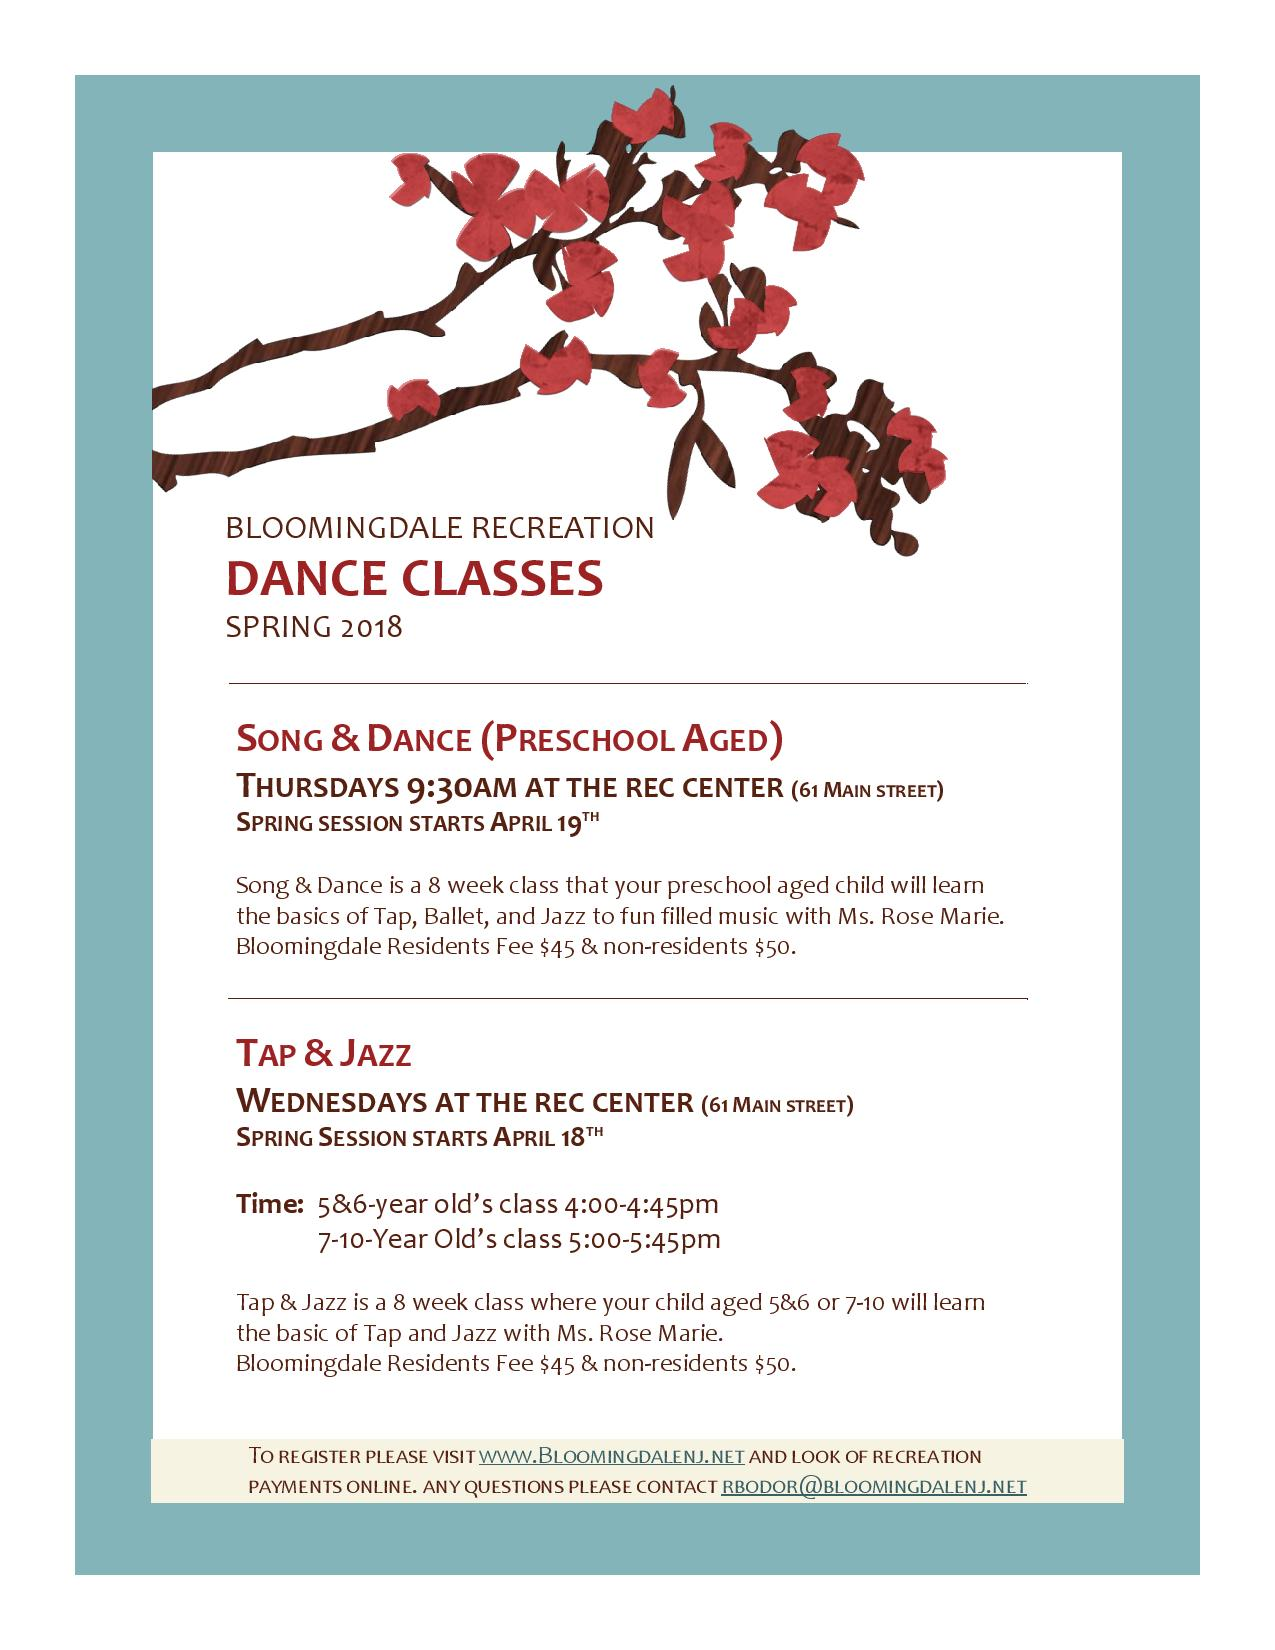 Spring 2018 dance classes borough of bloomingdale news spring 2018 dance classes release date april 03 mightylinksfo